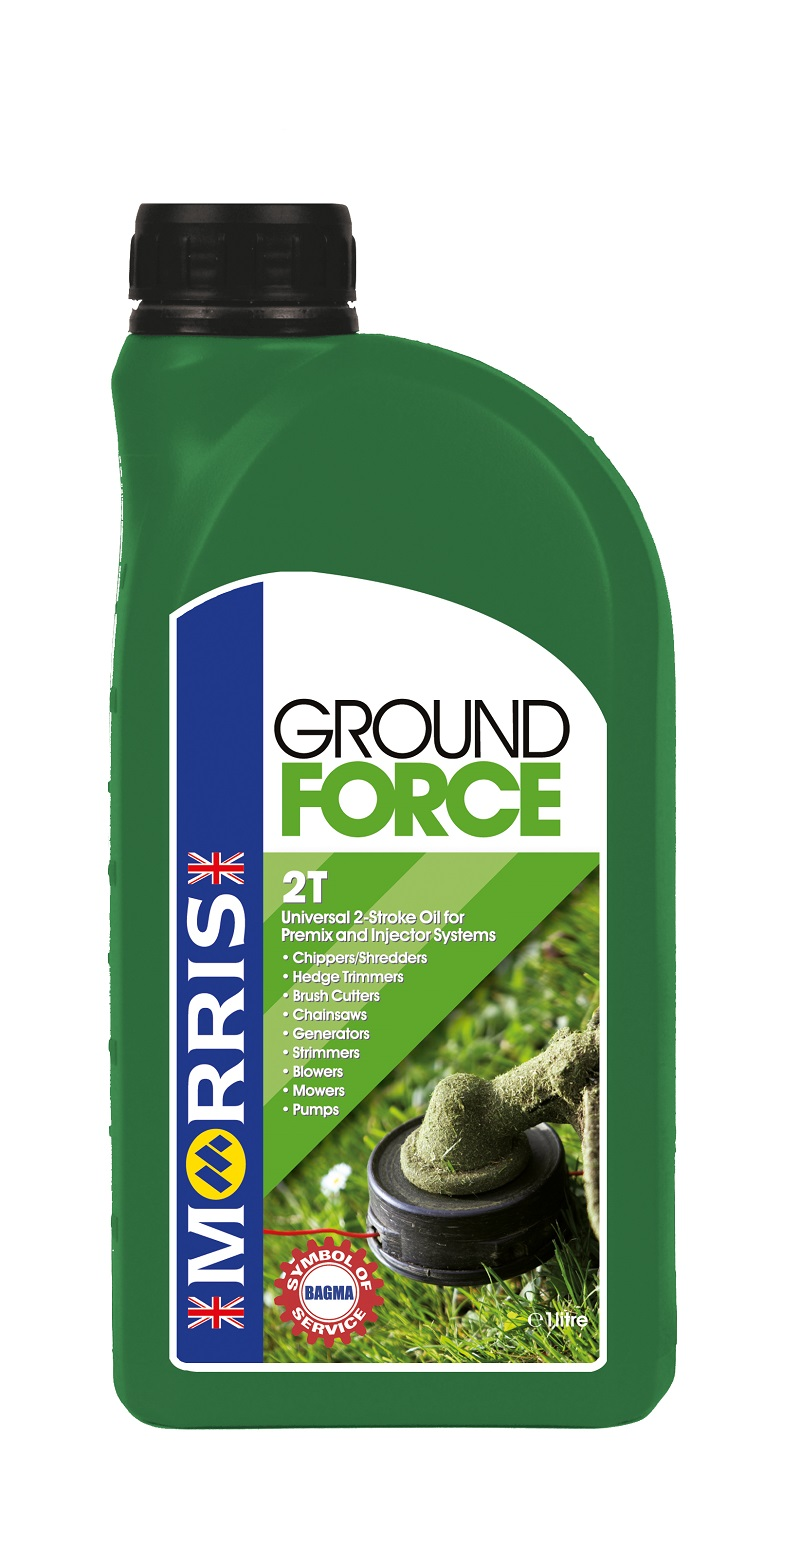 Ground Force 2T Universal 2 stroke oil